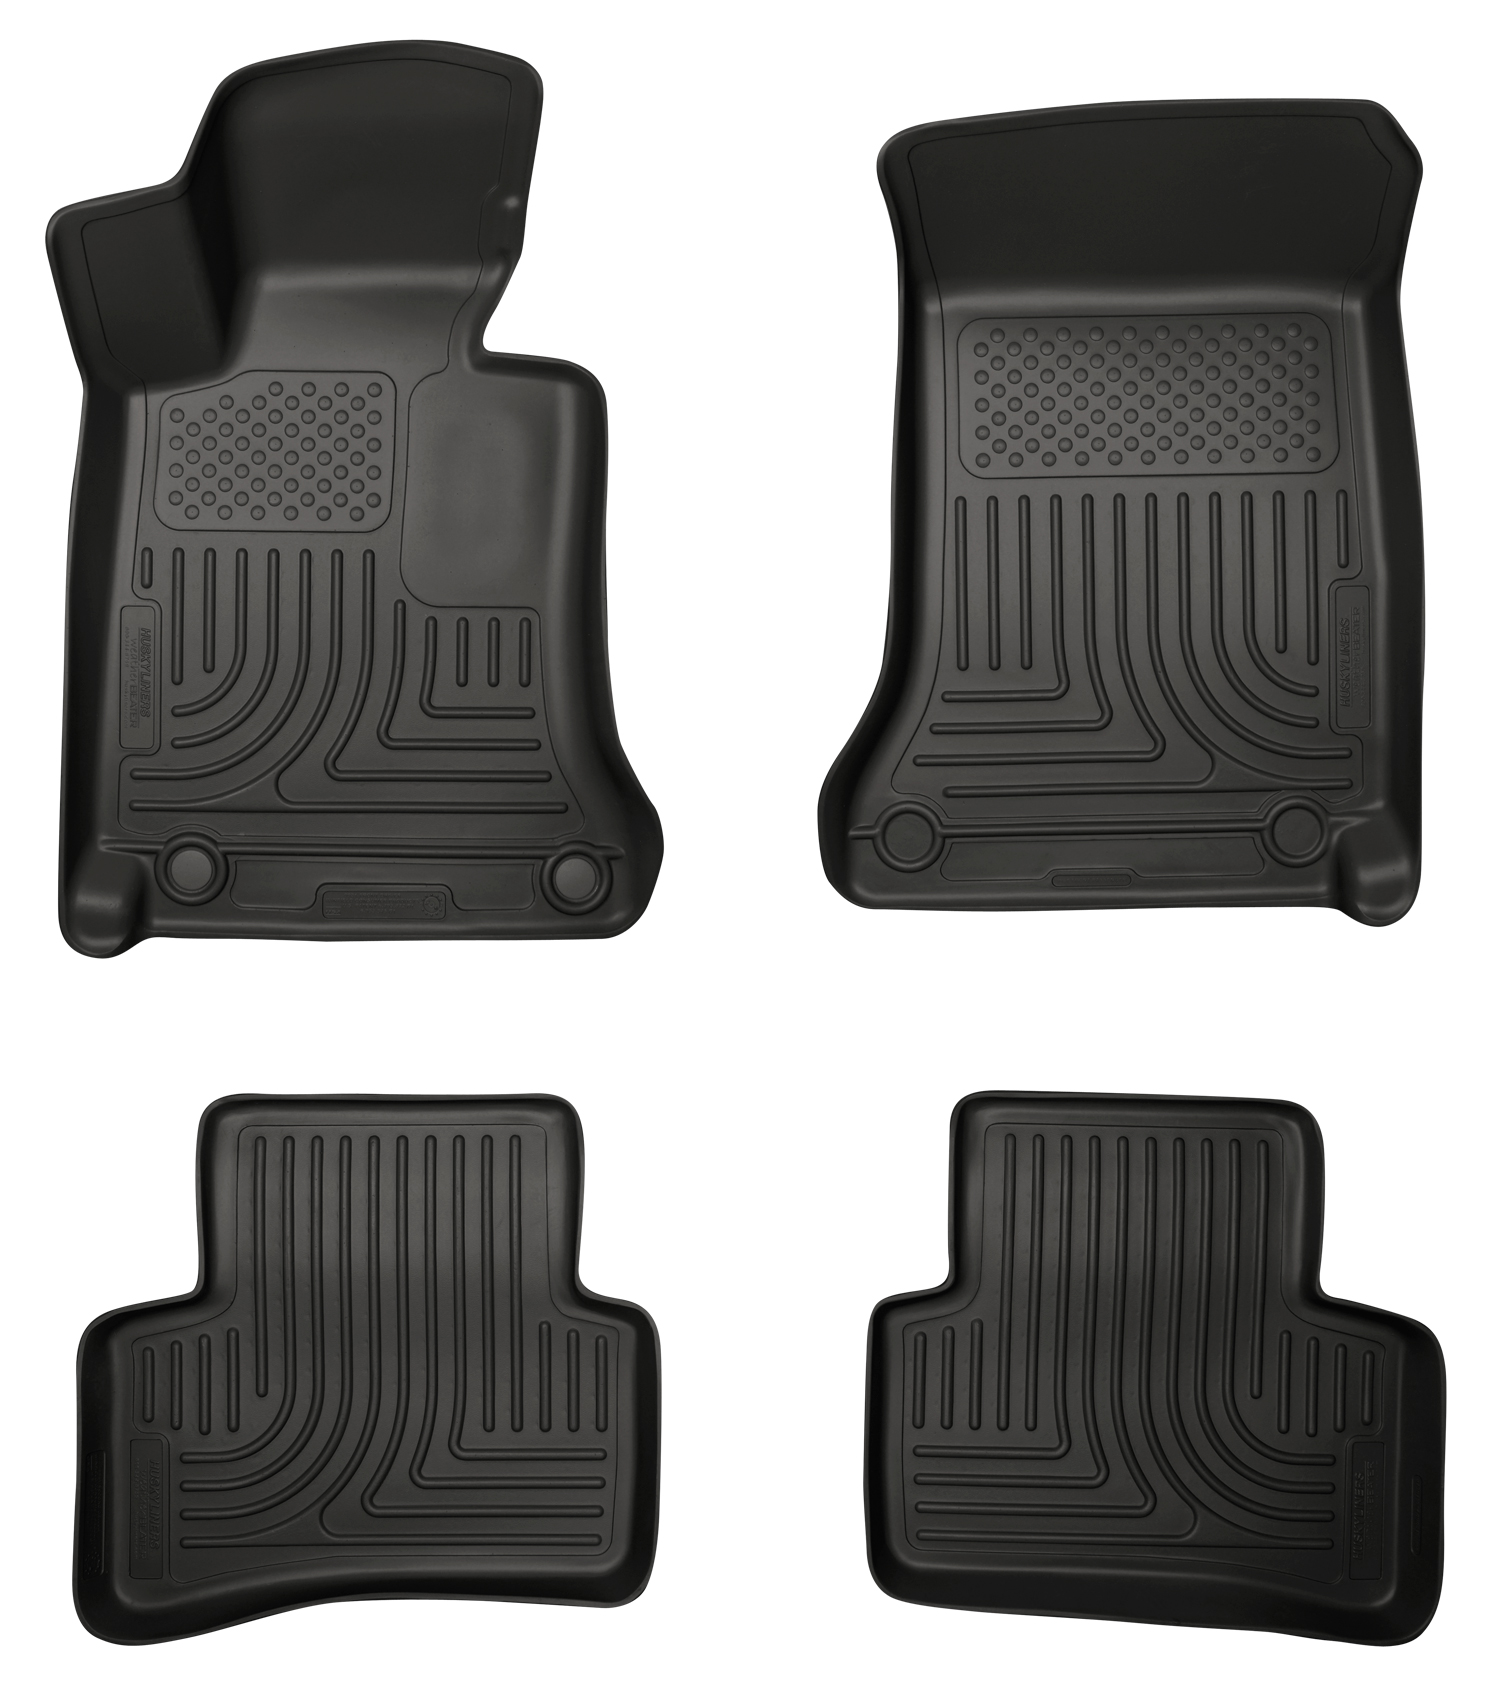 08 13 mercedes benz c class 4 dr floor mats black husky liners set. Cars Review. Best American Auto & Cars Review